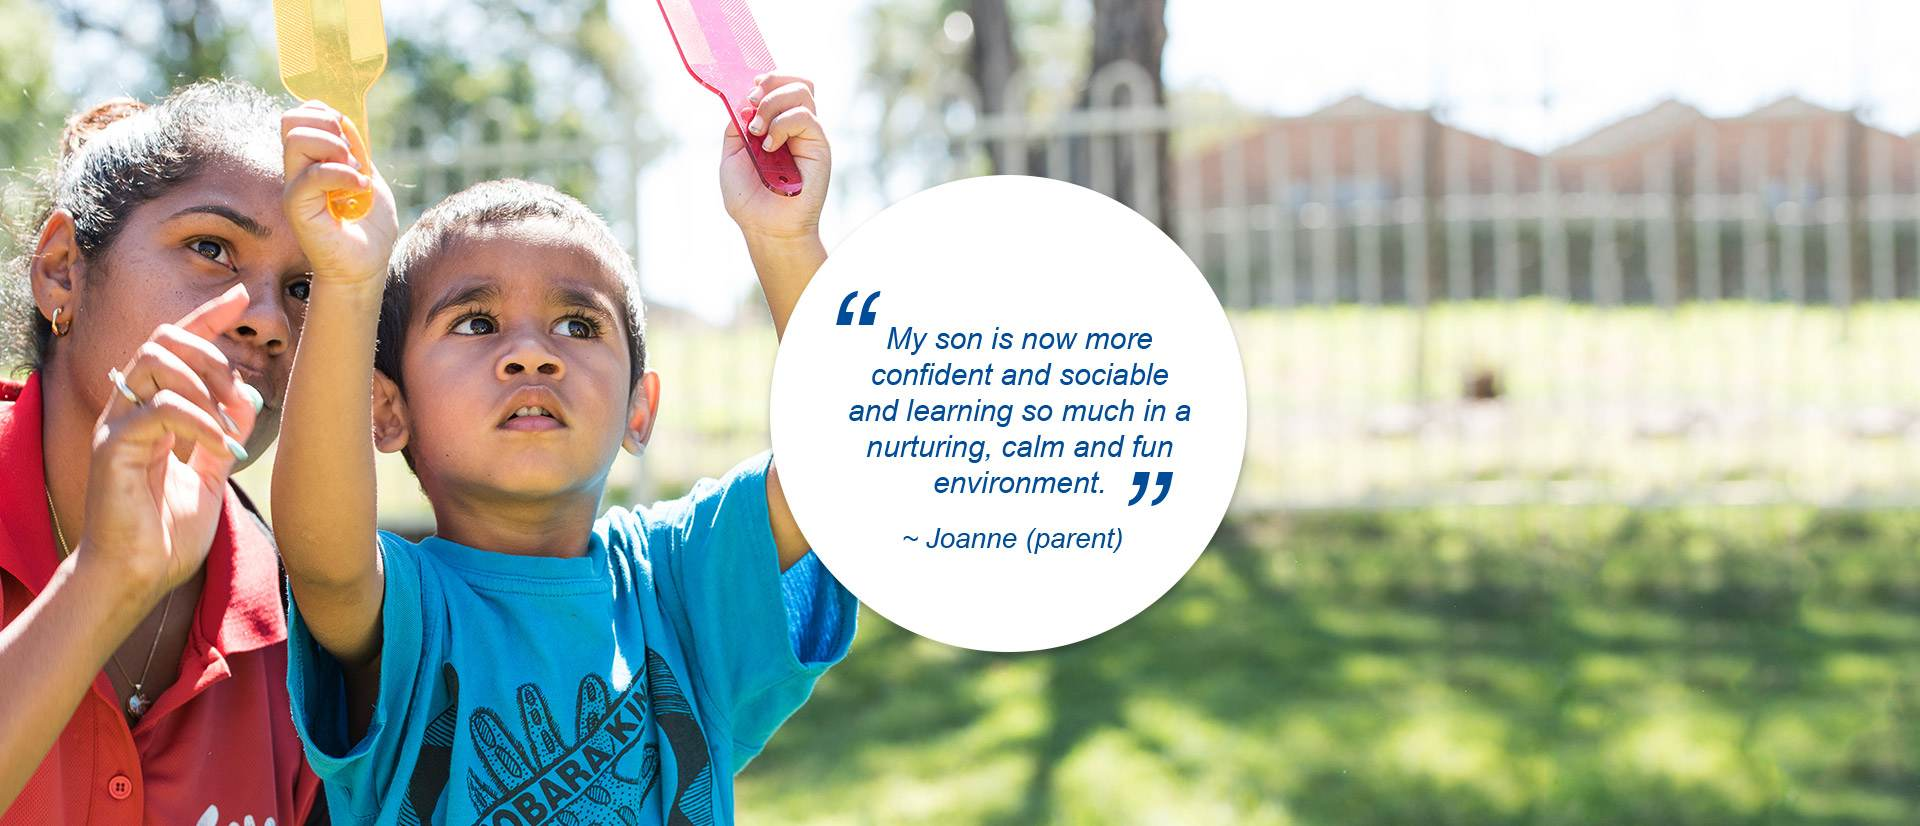 """My son is now more confident and social and leaning so much in a nurturing, calm and fun environment."" - Joanne (parent)"